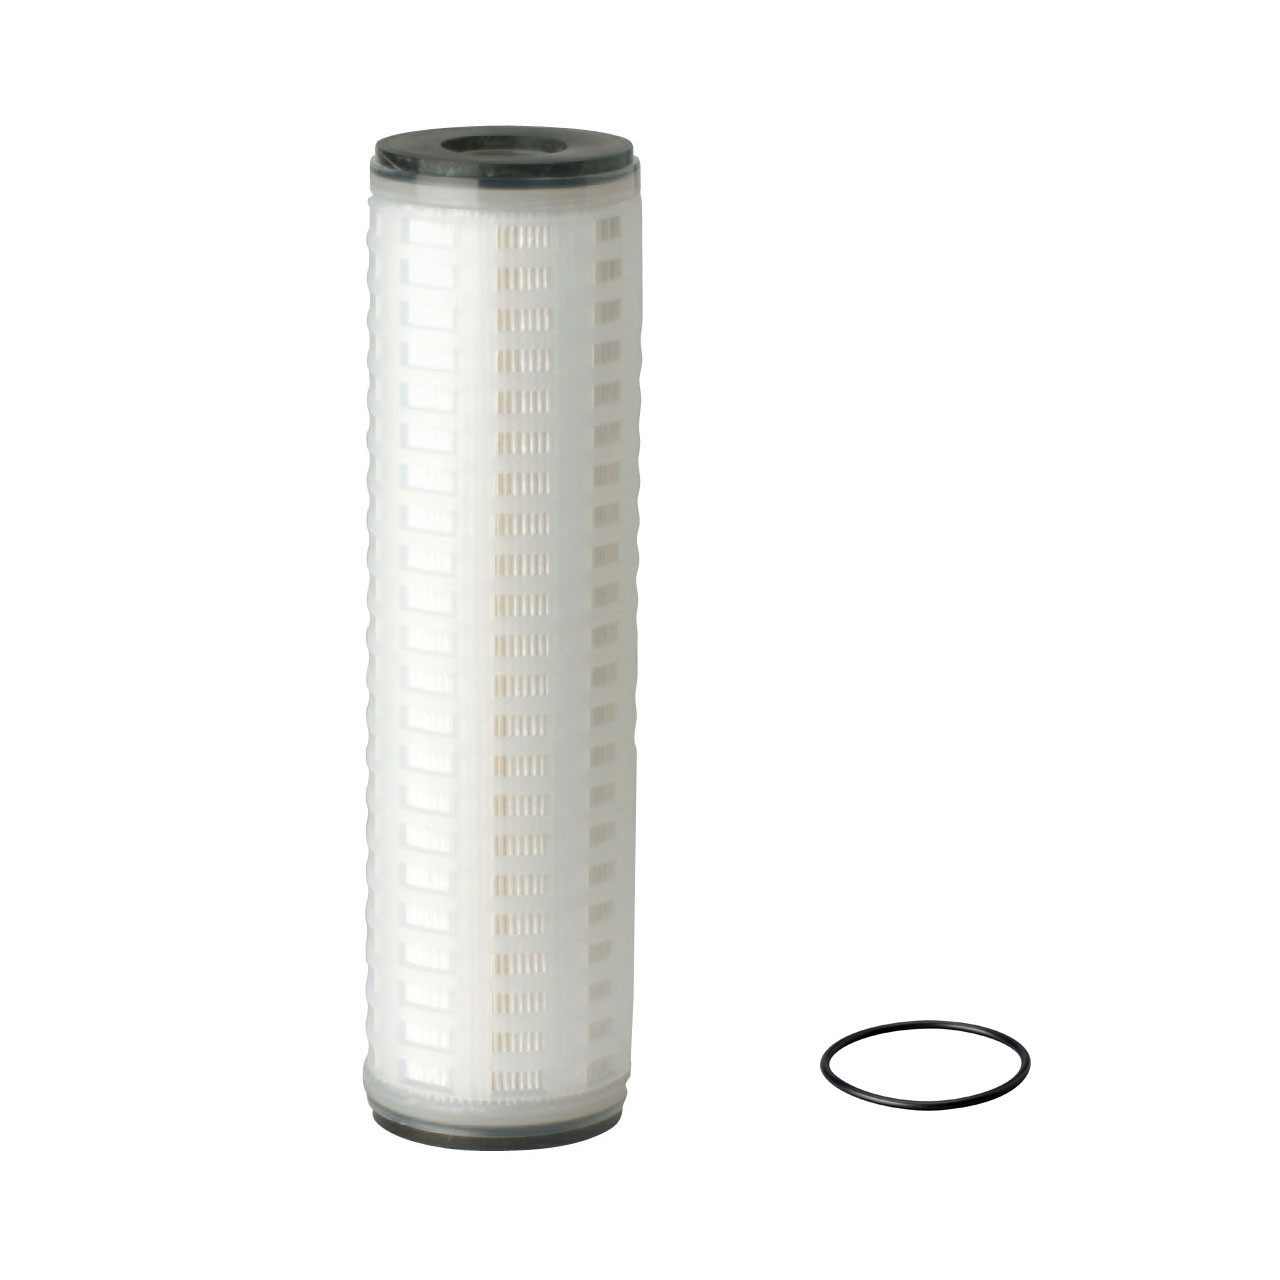 donaldson diesel exhaust fuel filter for donaldson 1 in def housing Diesel Exhaust Filter